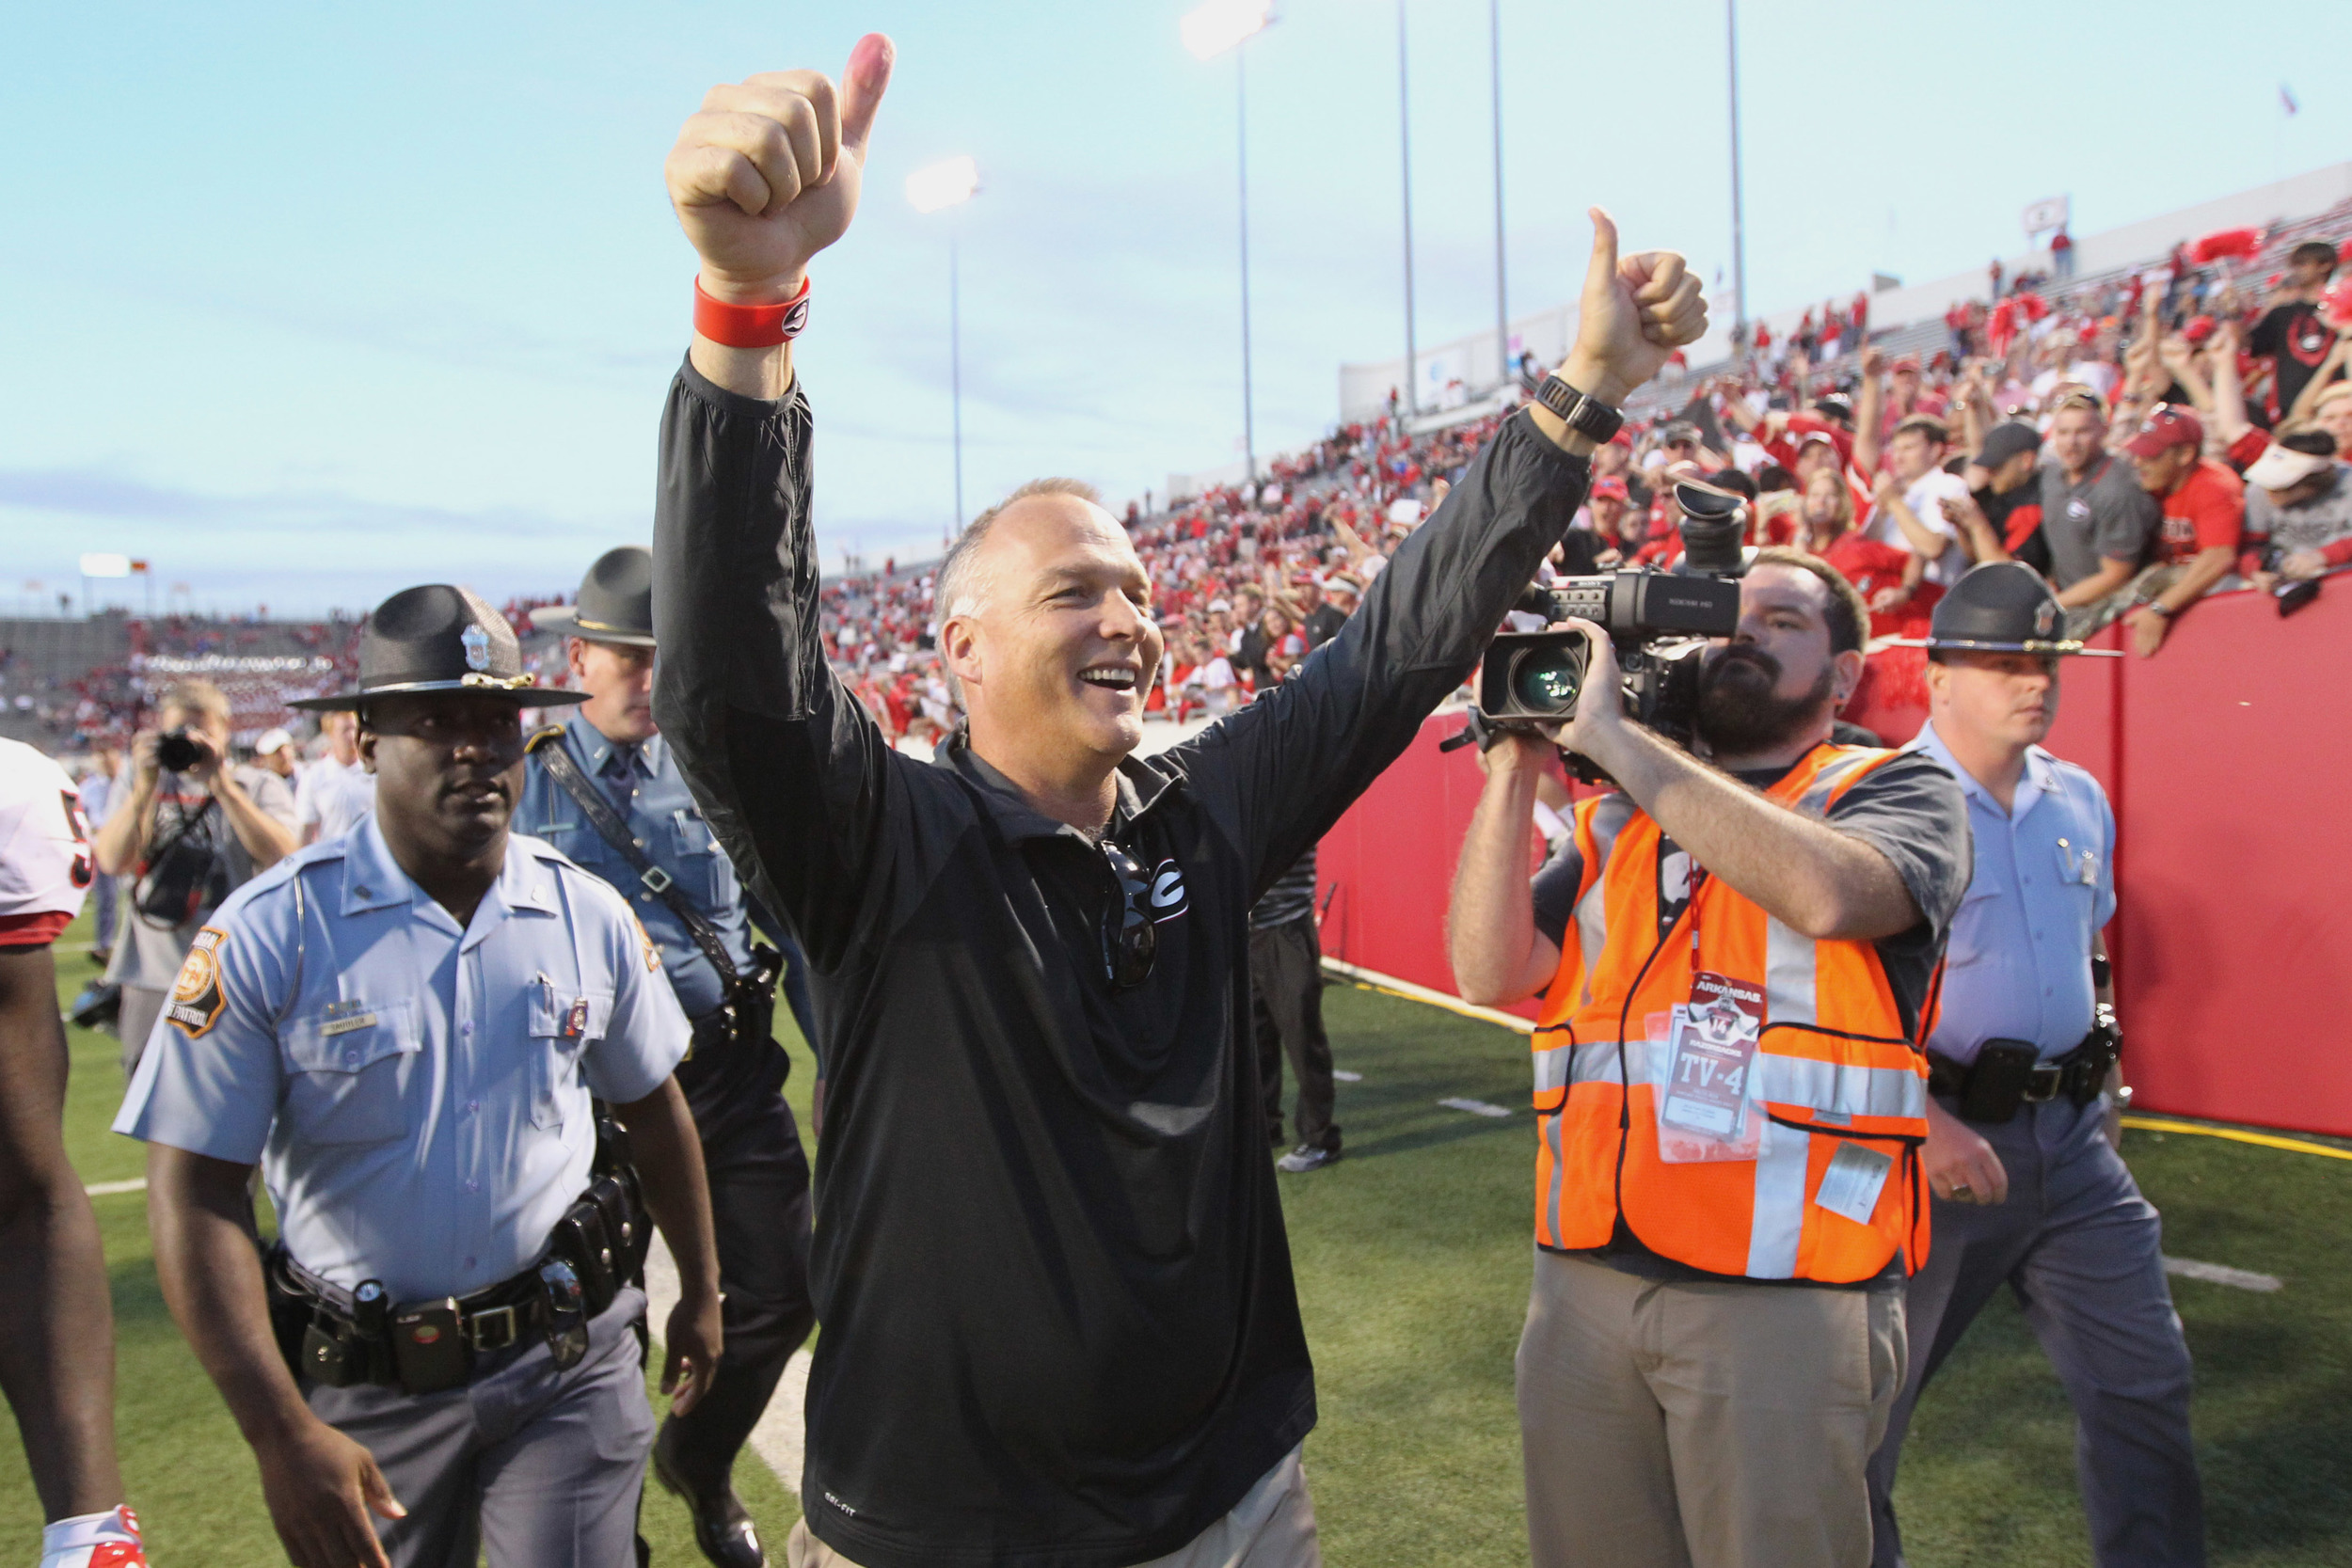 After the game, Coach Richt took his players out for pizza. 14 players were arrested along the way, including Bret Bielema. The charge was for Grant Theft Pizza.